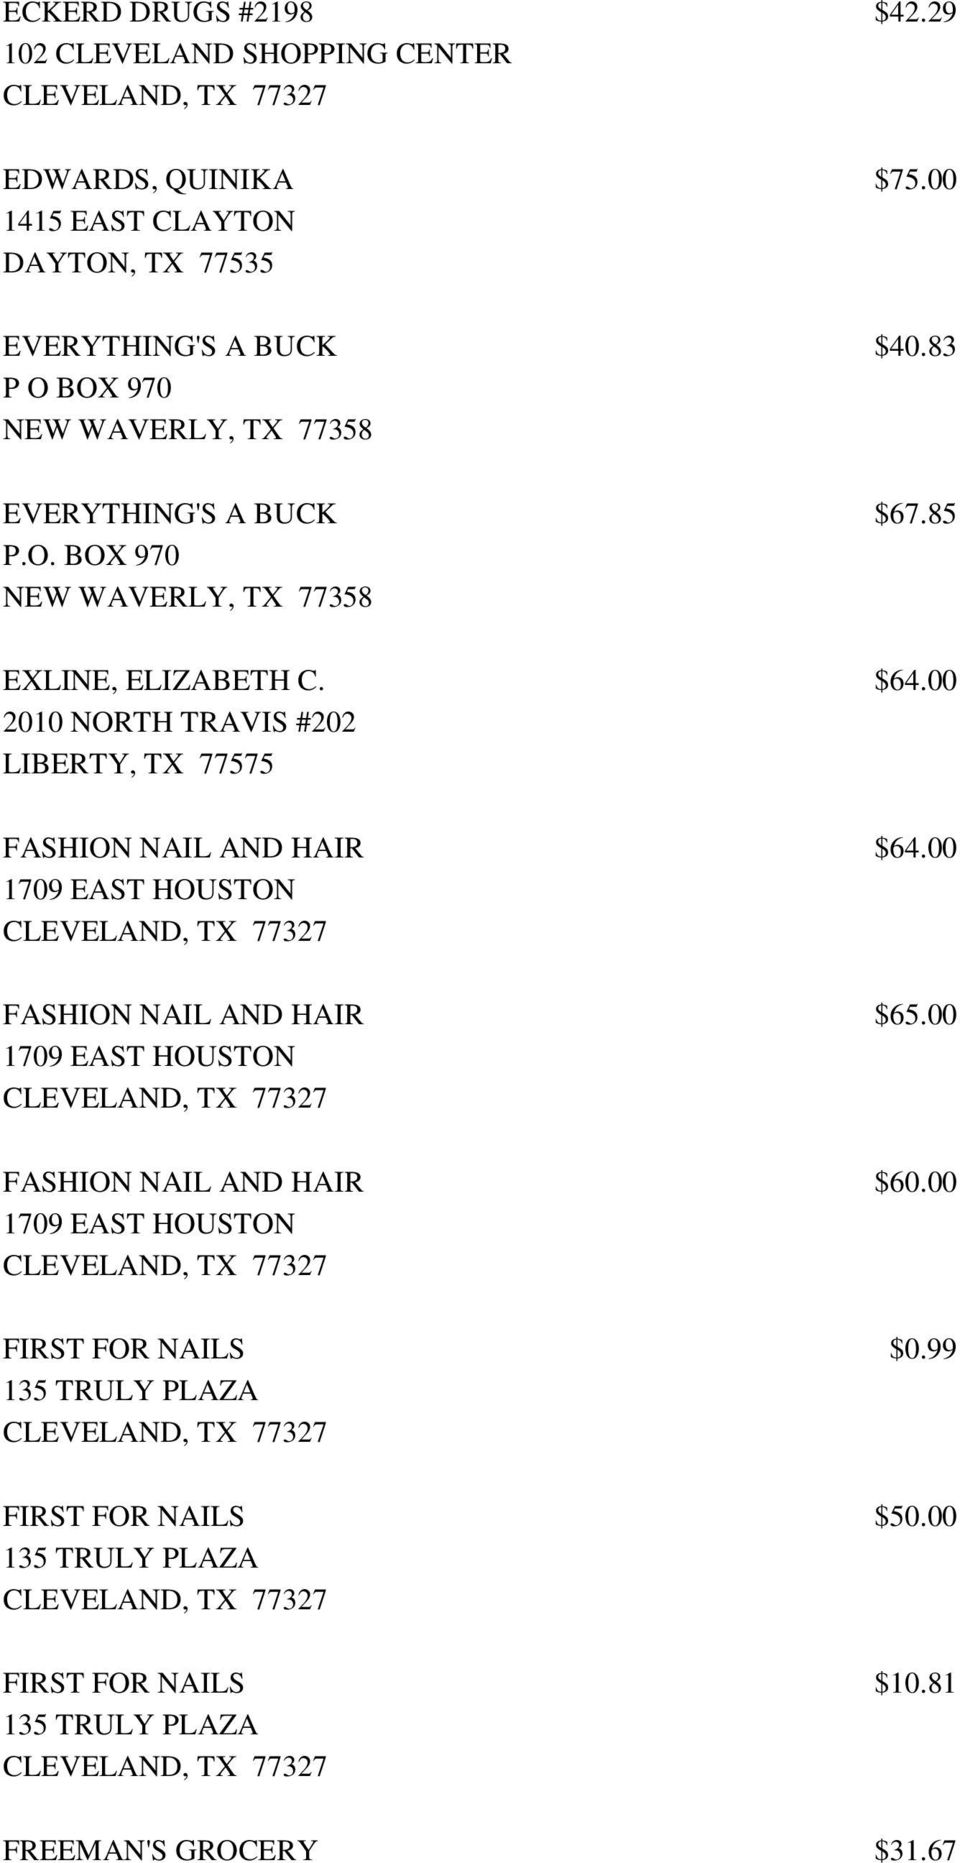 00 2010 NORTH TRAVIS #202 FASHION NAIL AND HAIR $64.00 1709 EAST HOUSTON FASHION NAIL AND HAIR $65.